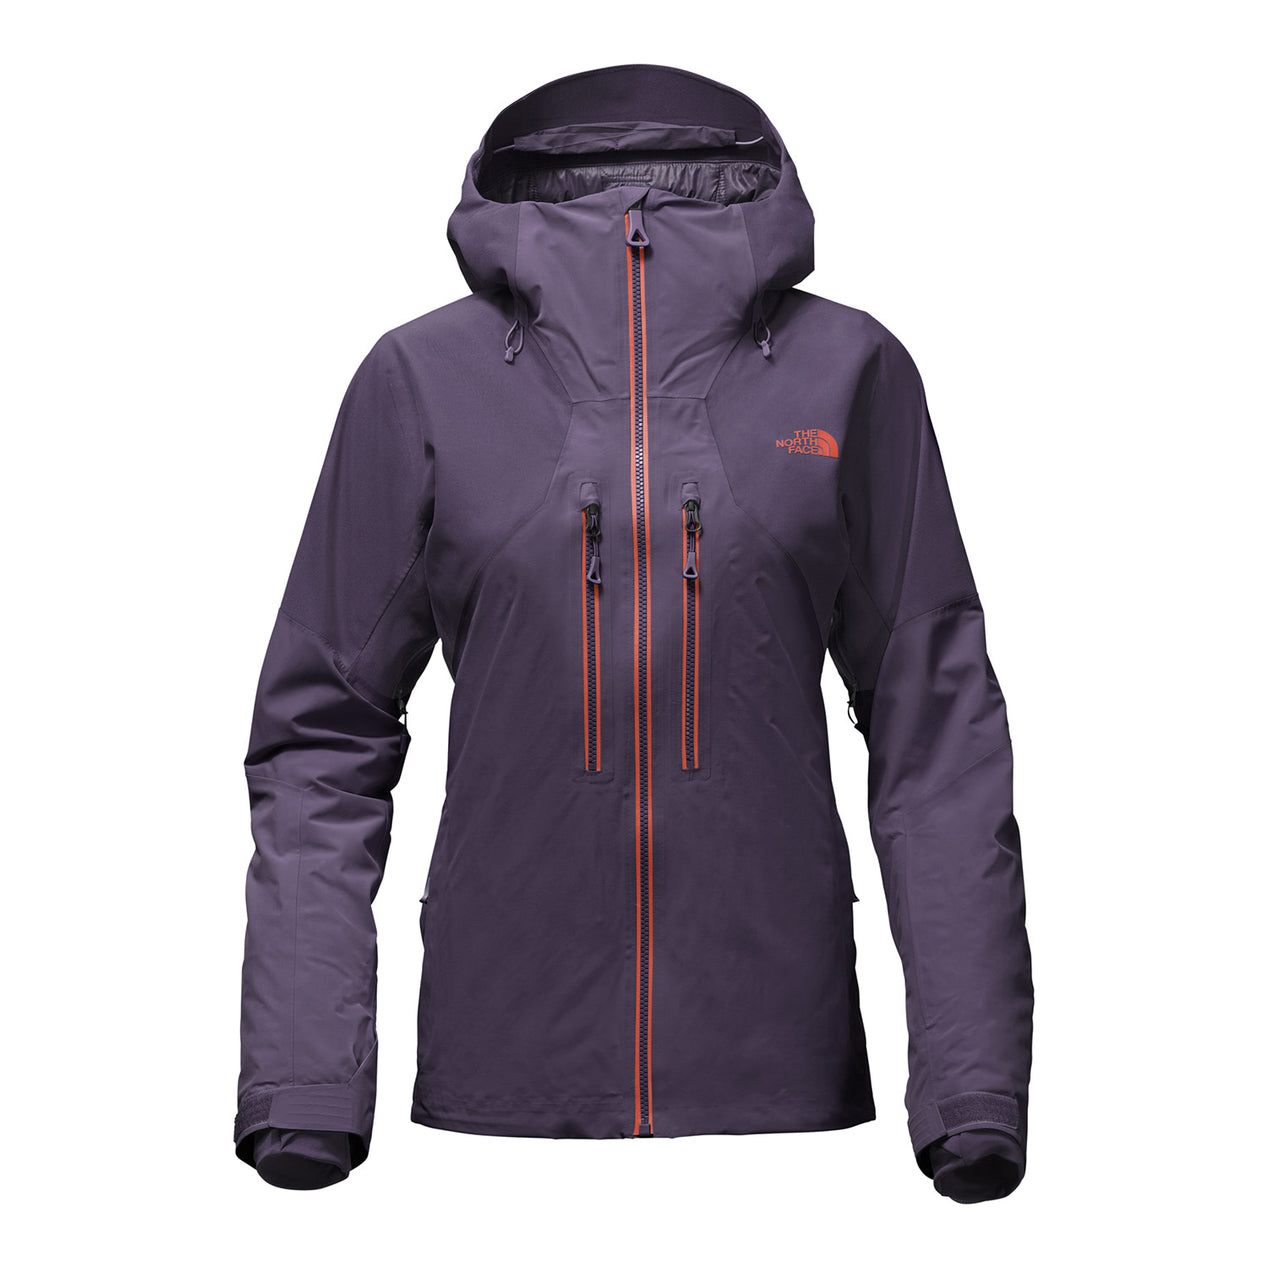 a3c04f321 The North Face Women's Powder Guide Jacket Past Season